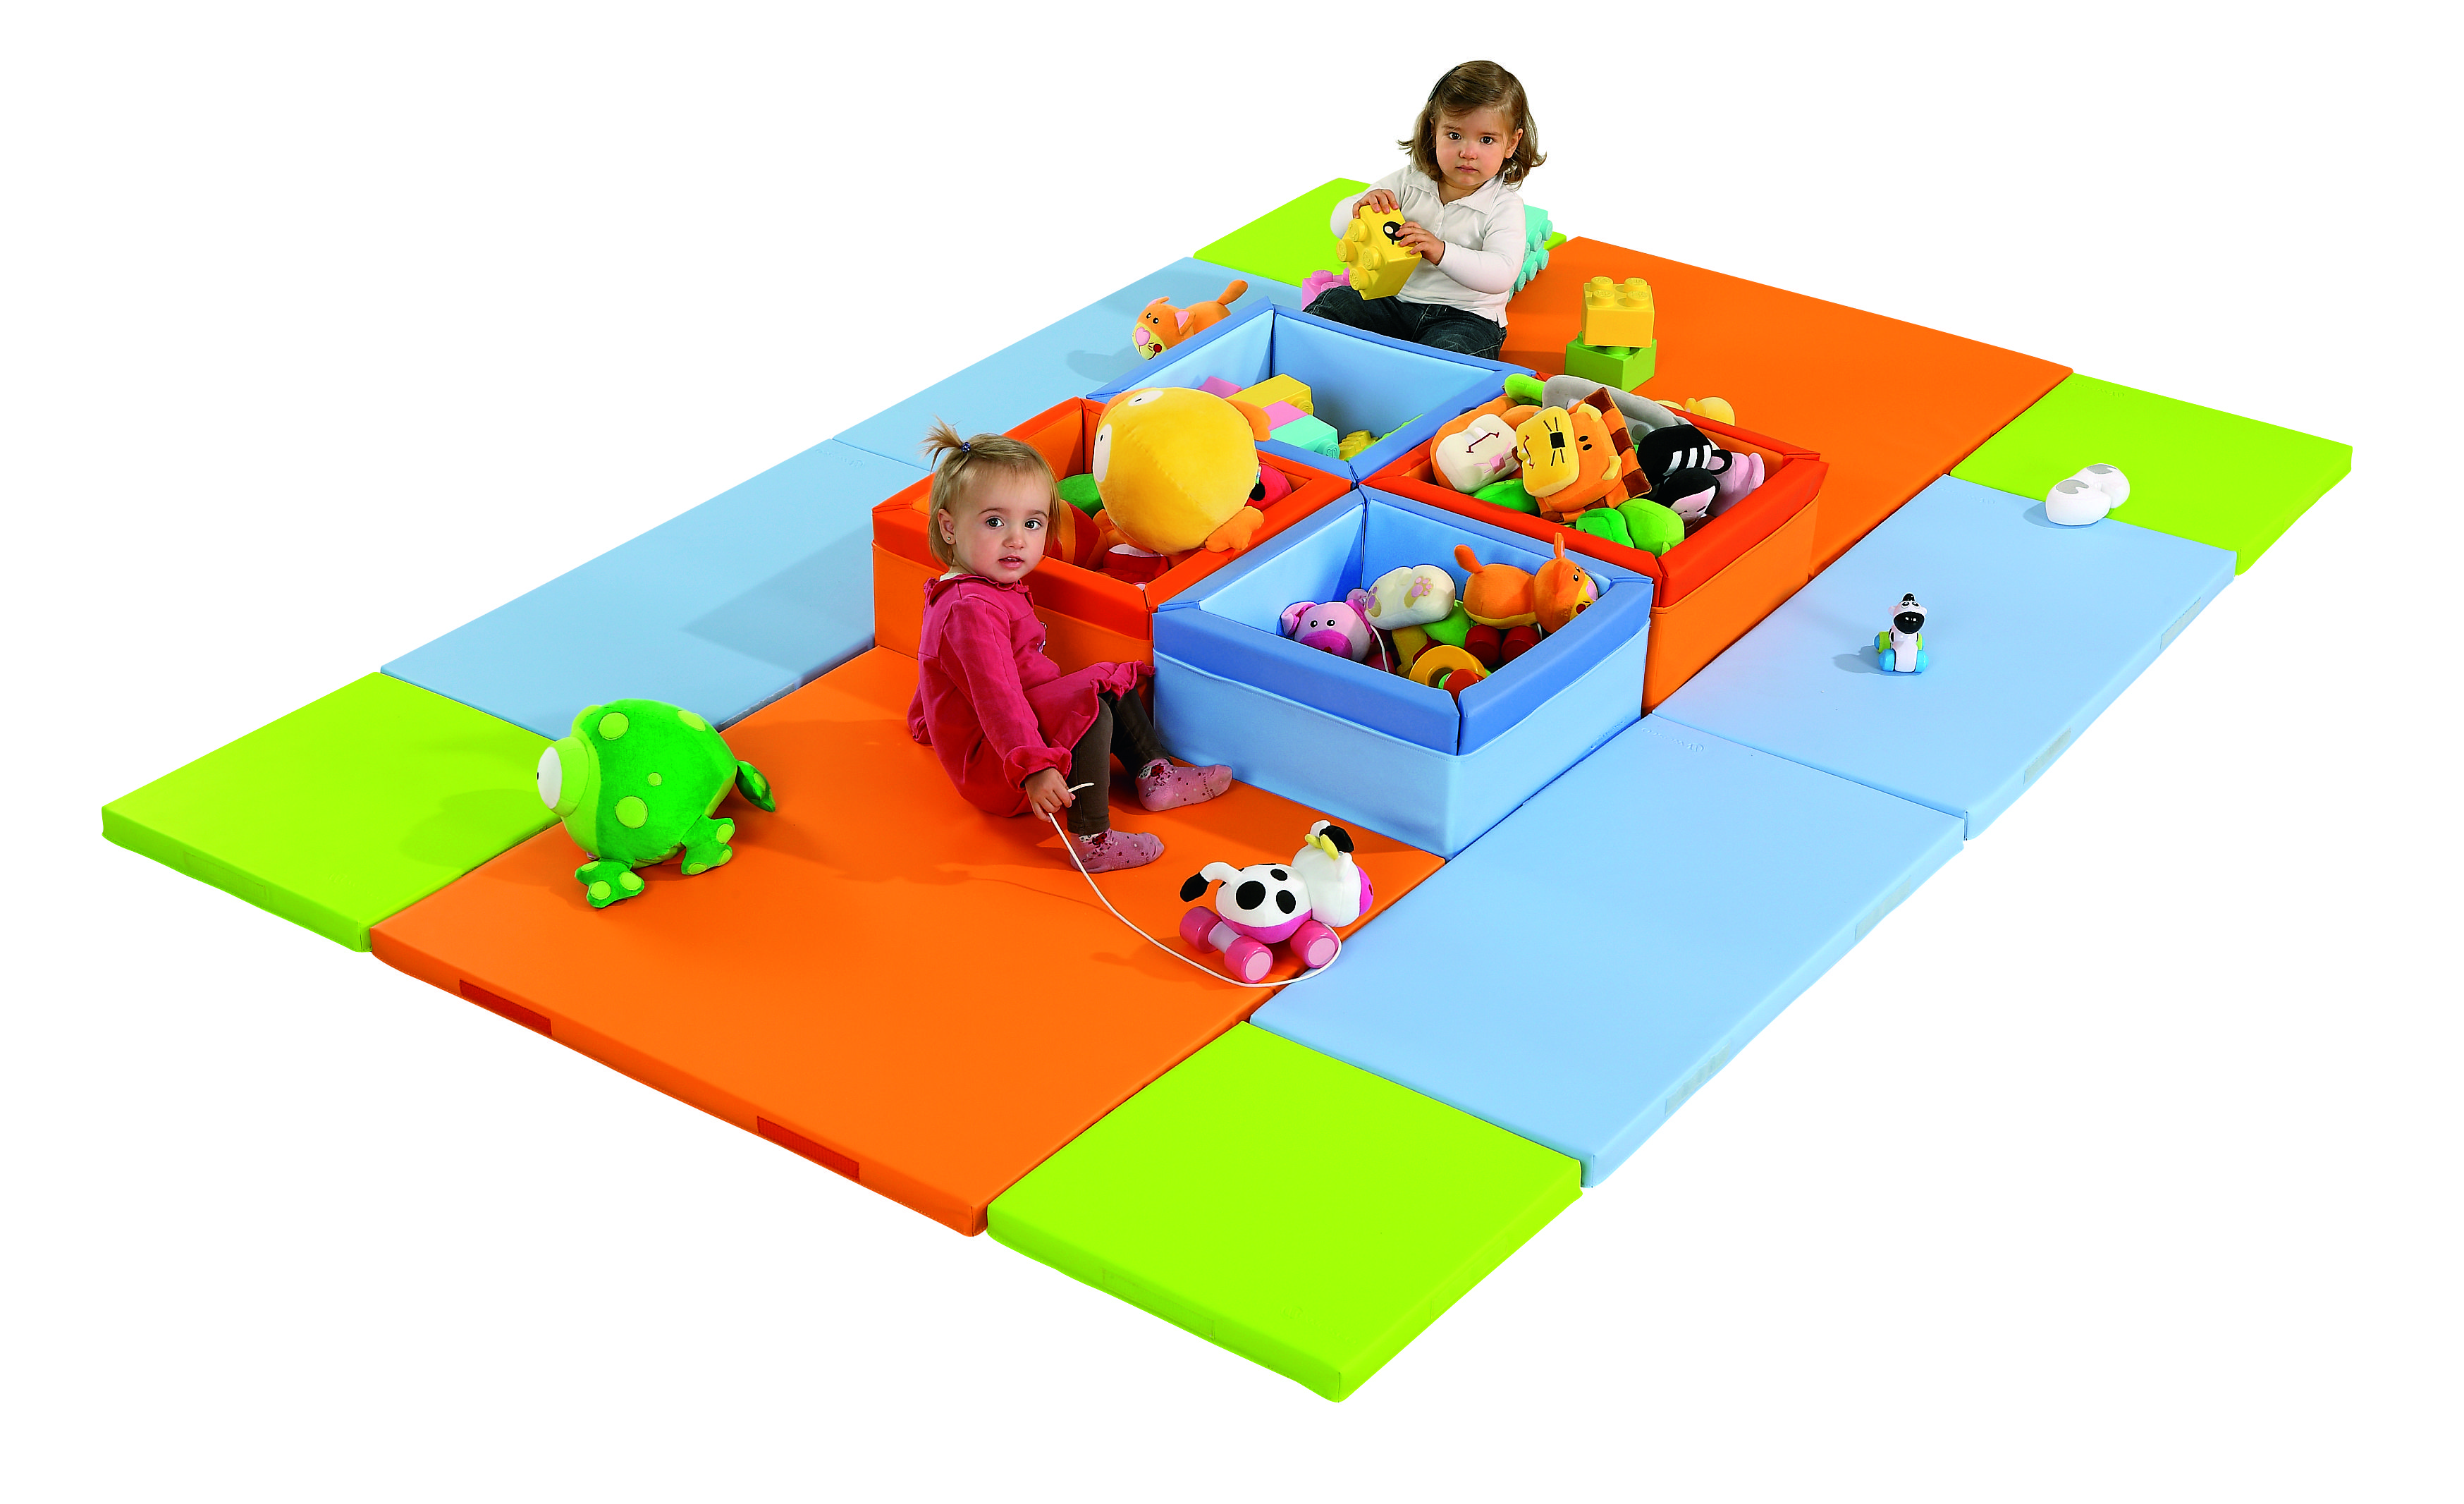 Maxi Island Kit From Wesco This Kit Consists Of 14 Pieces In Total 4 Mosaic Containers 10 Mats Let Your Tot Explore In A Safe But Playroom Wesco Fun